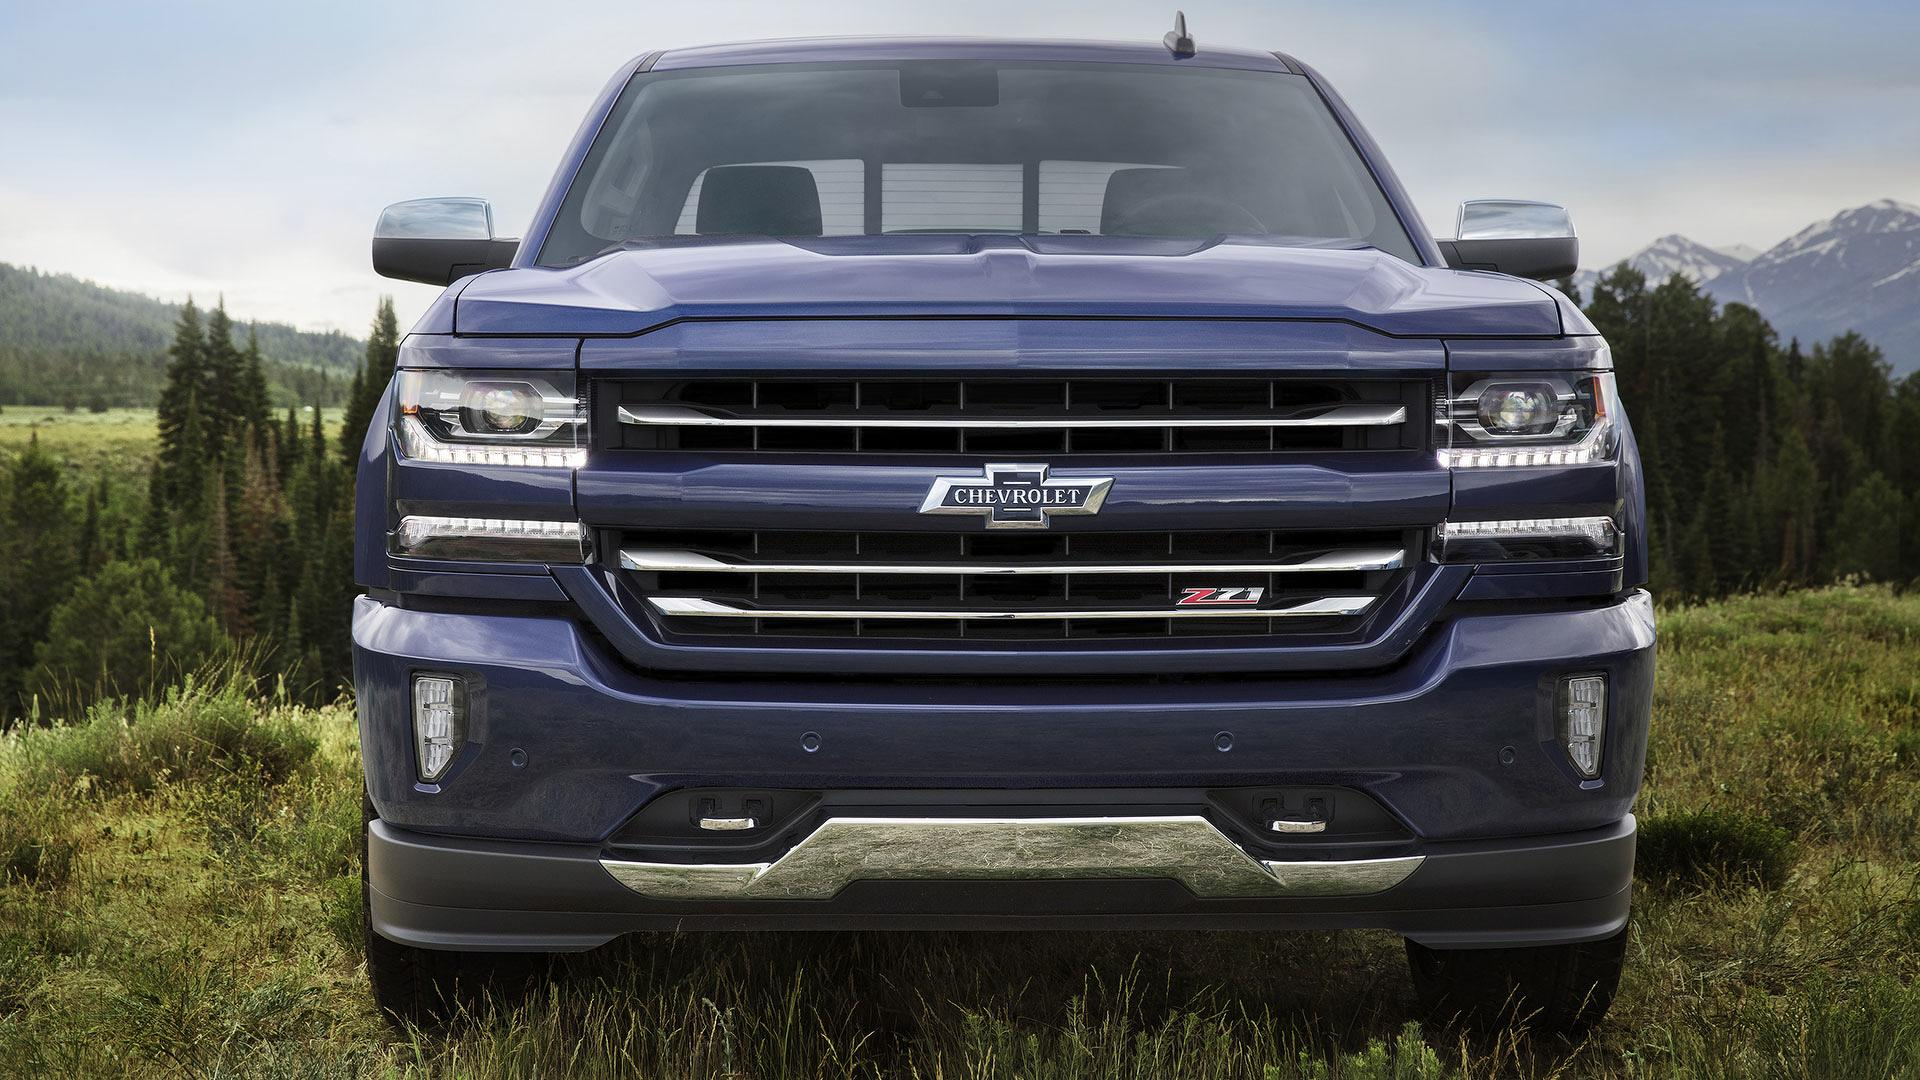 2018 chevrolet 1 ton. interesting ton fast fact the 1918 chevrolet oneton truck was powered by a fourcylinder  engine rated at 36 horsepower its top speed 25 mph for 2018 chevrolet 1 ton